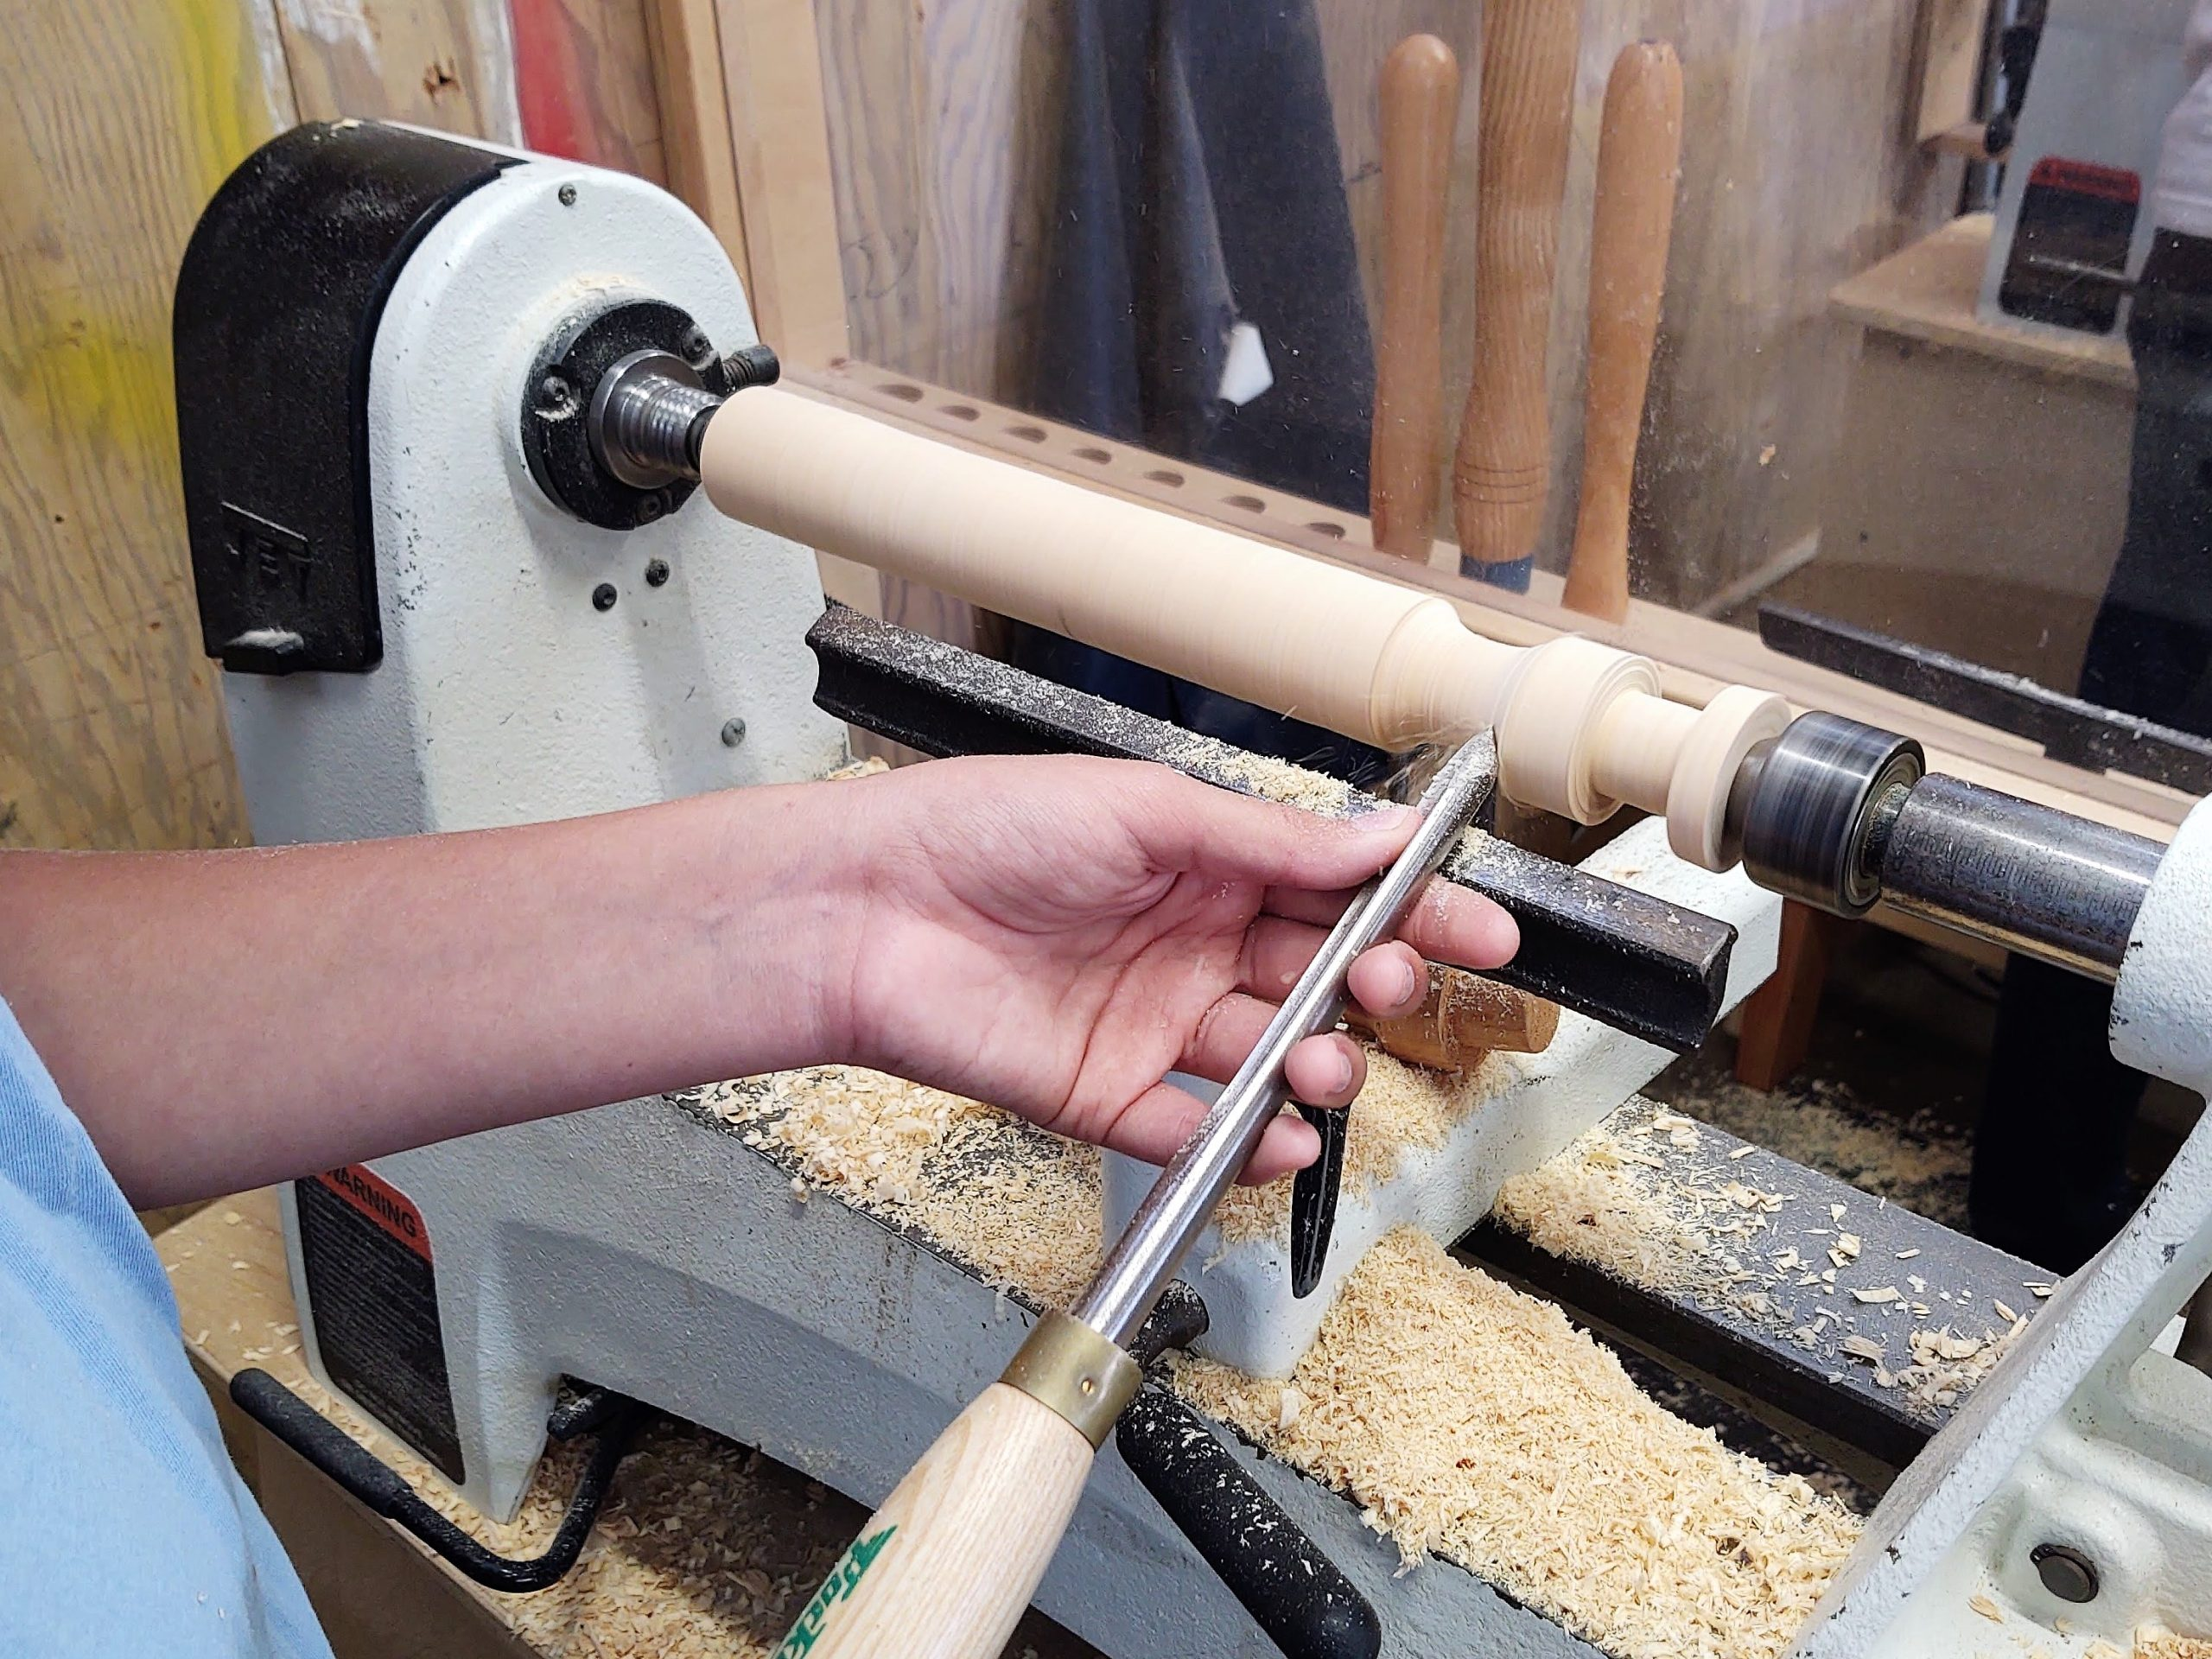 Student starting a candlestick project in woodshop class.